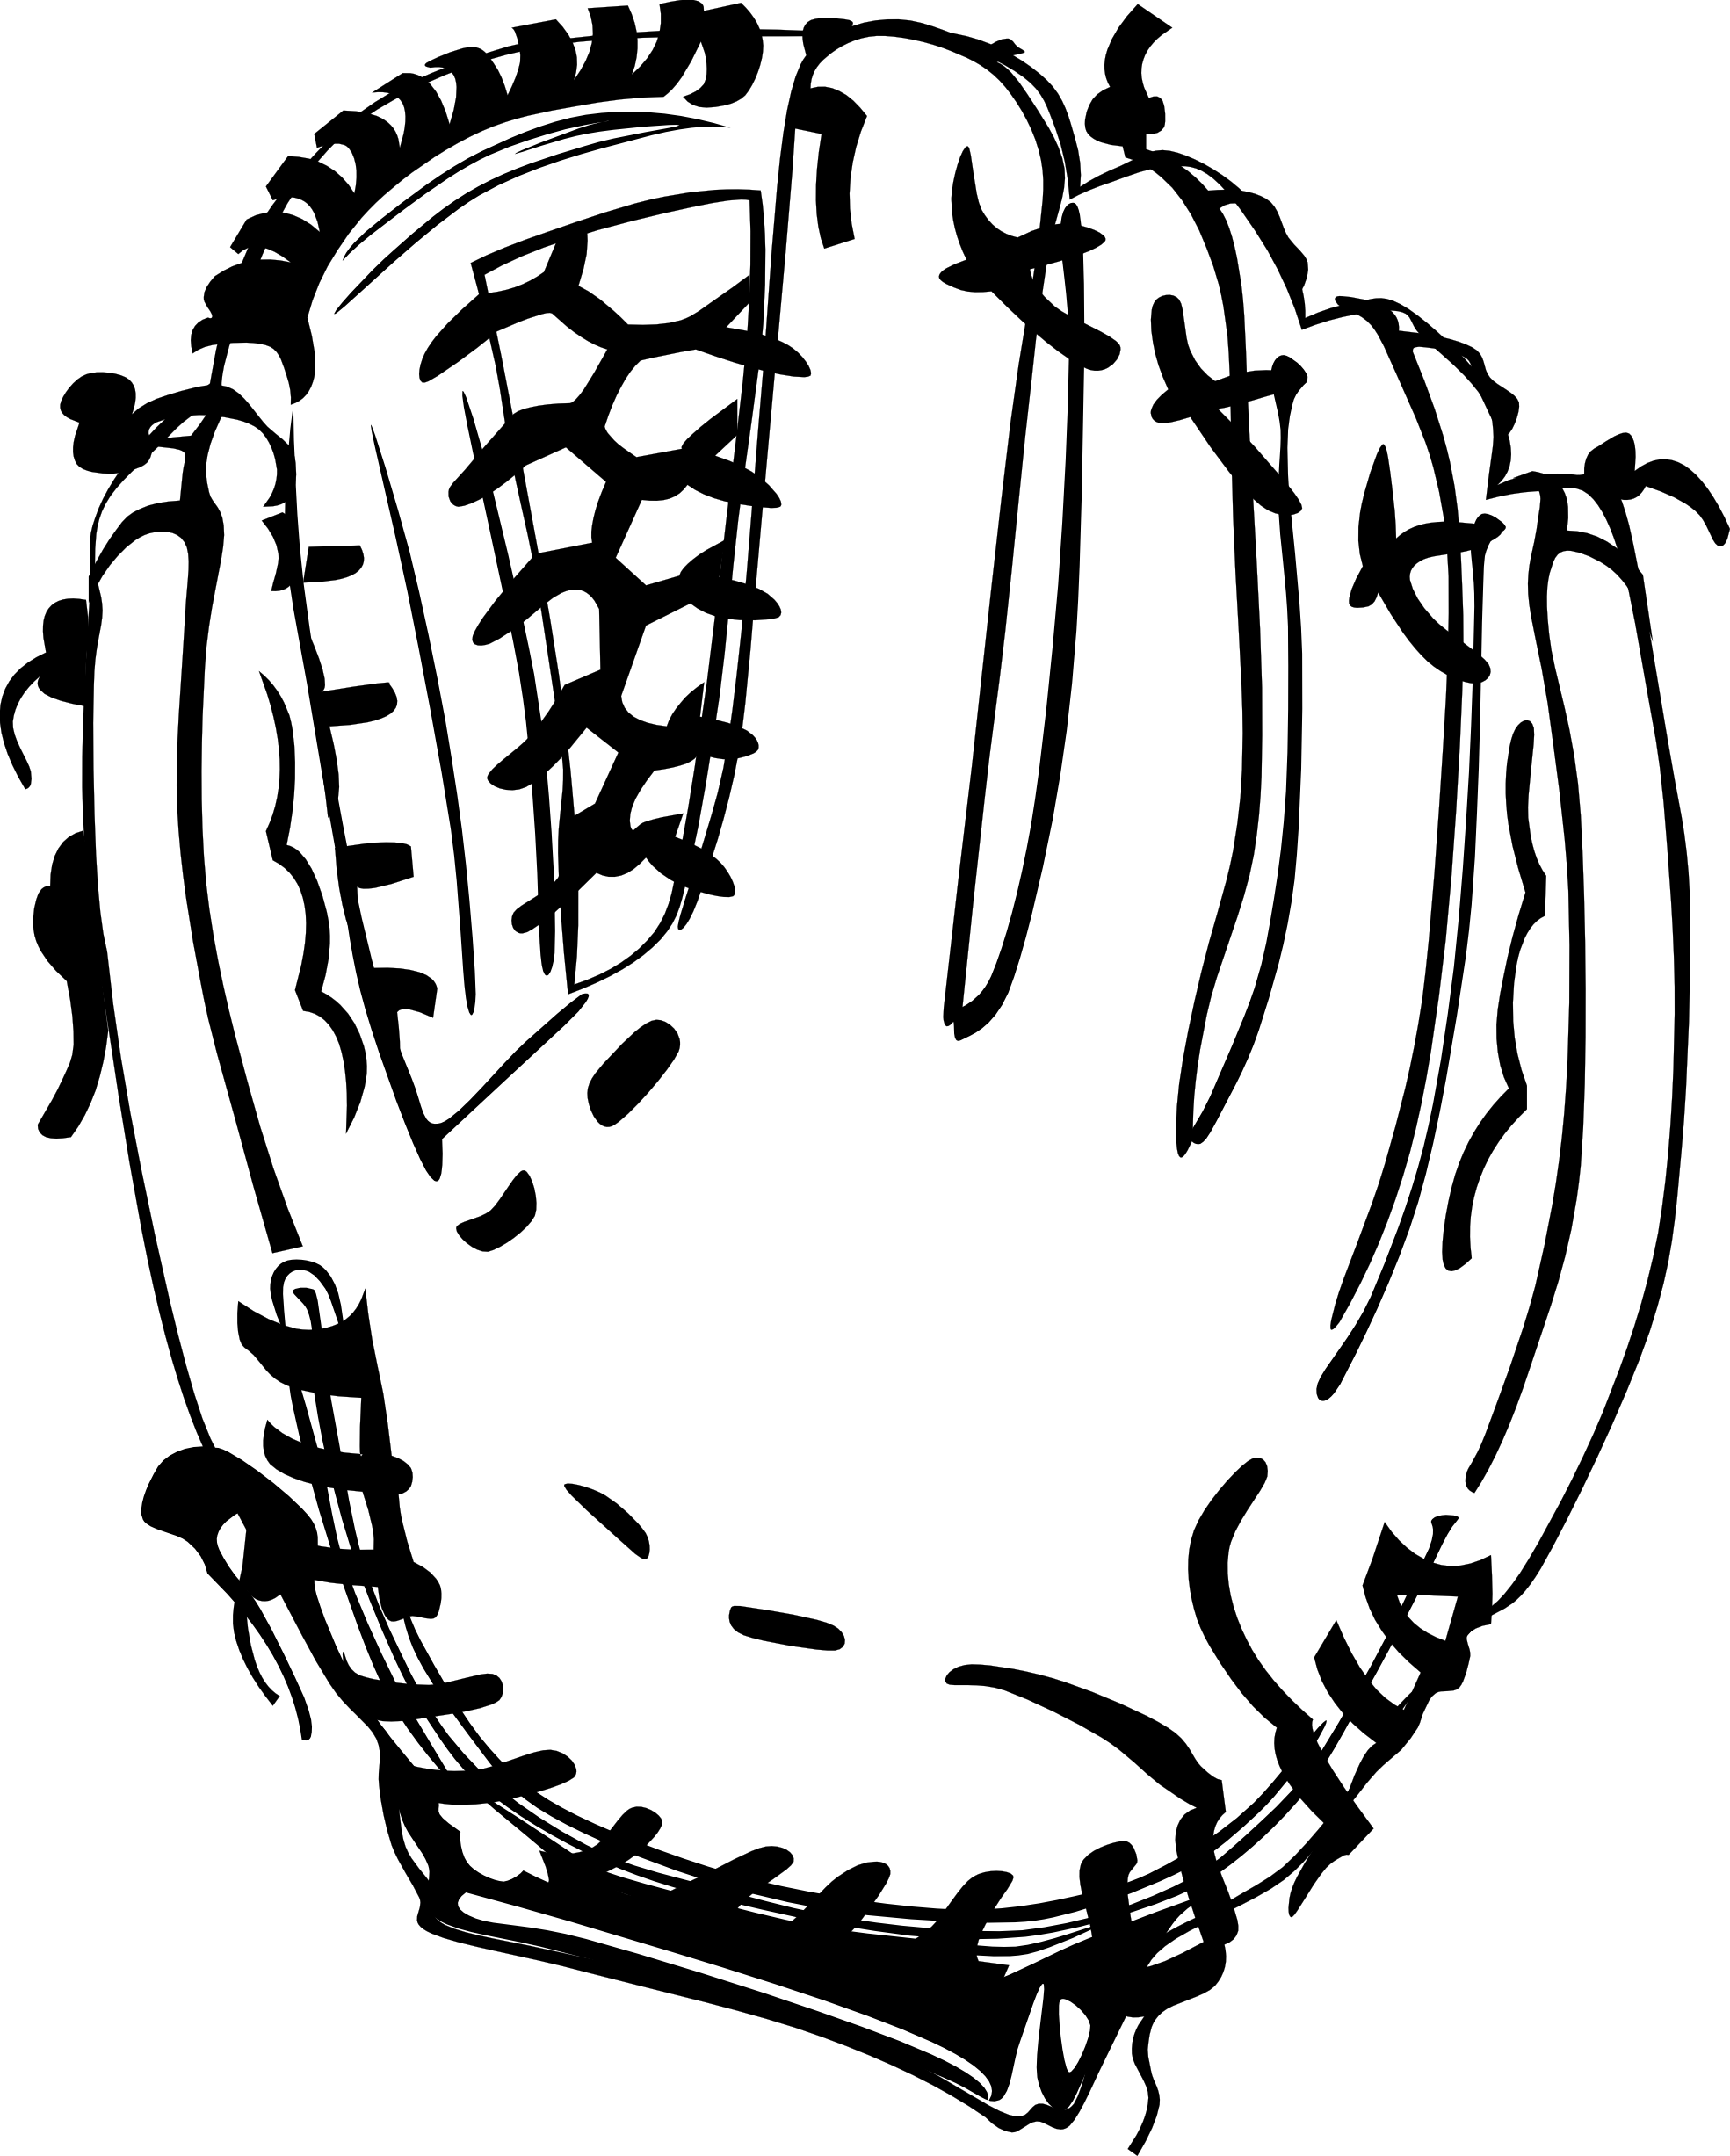 Gloves clipart tool. Baseball black and white